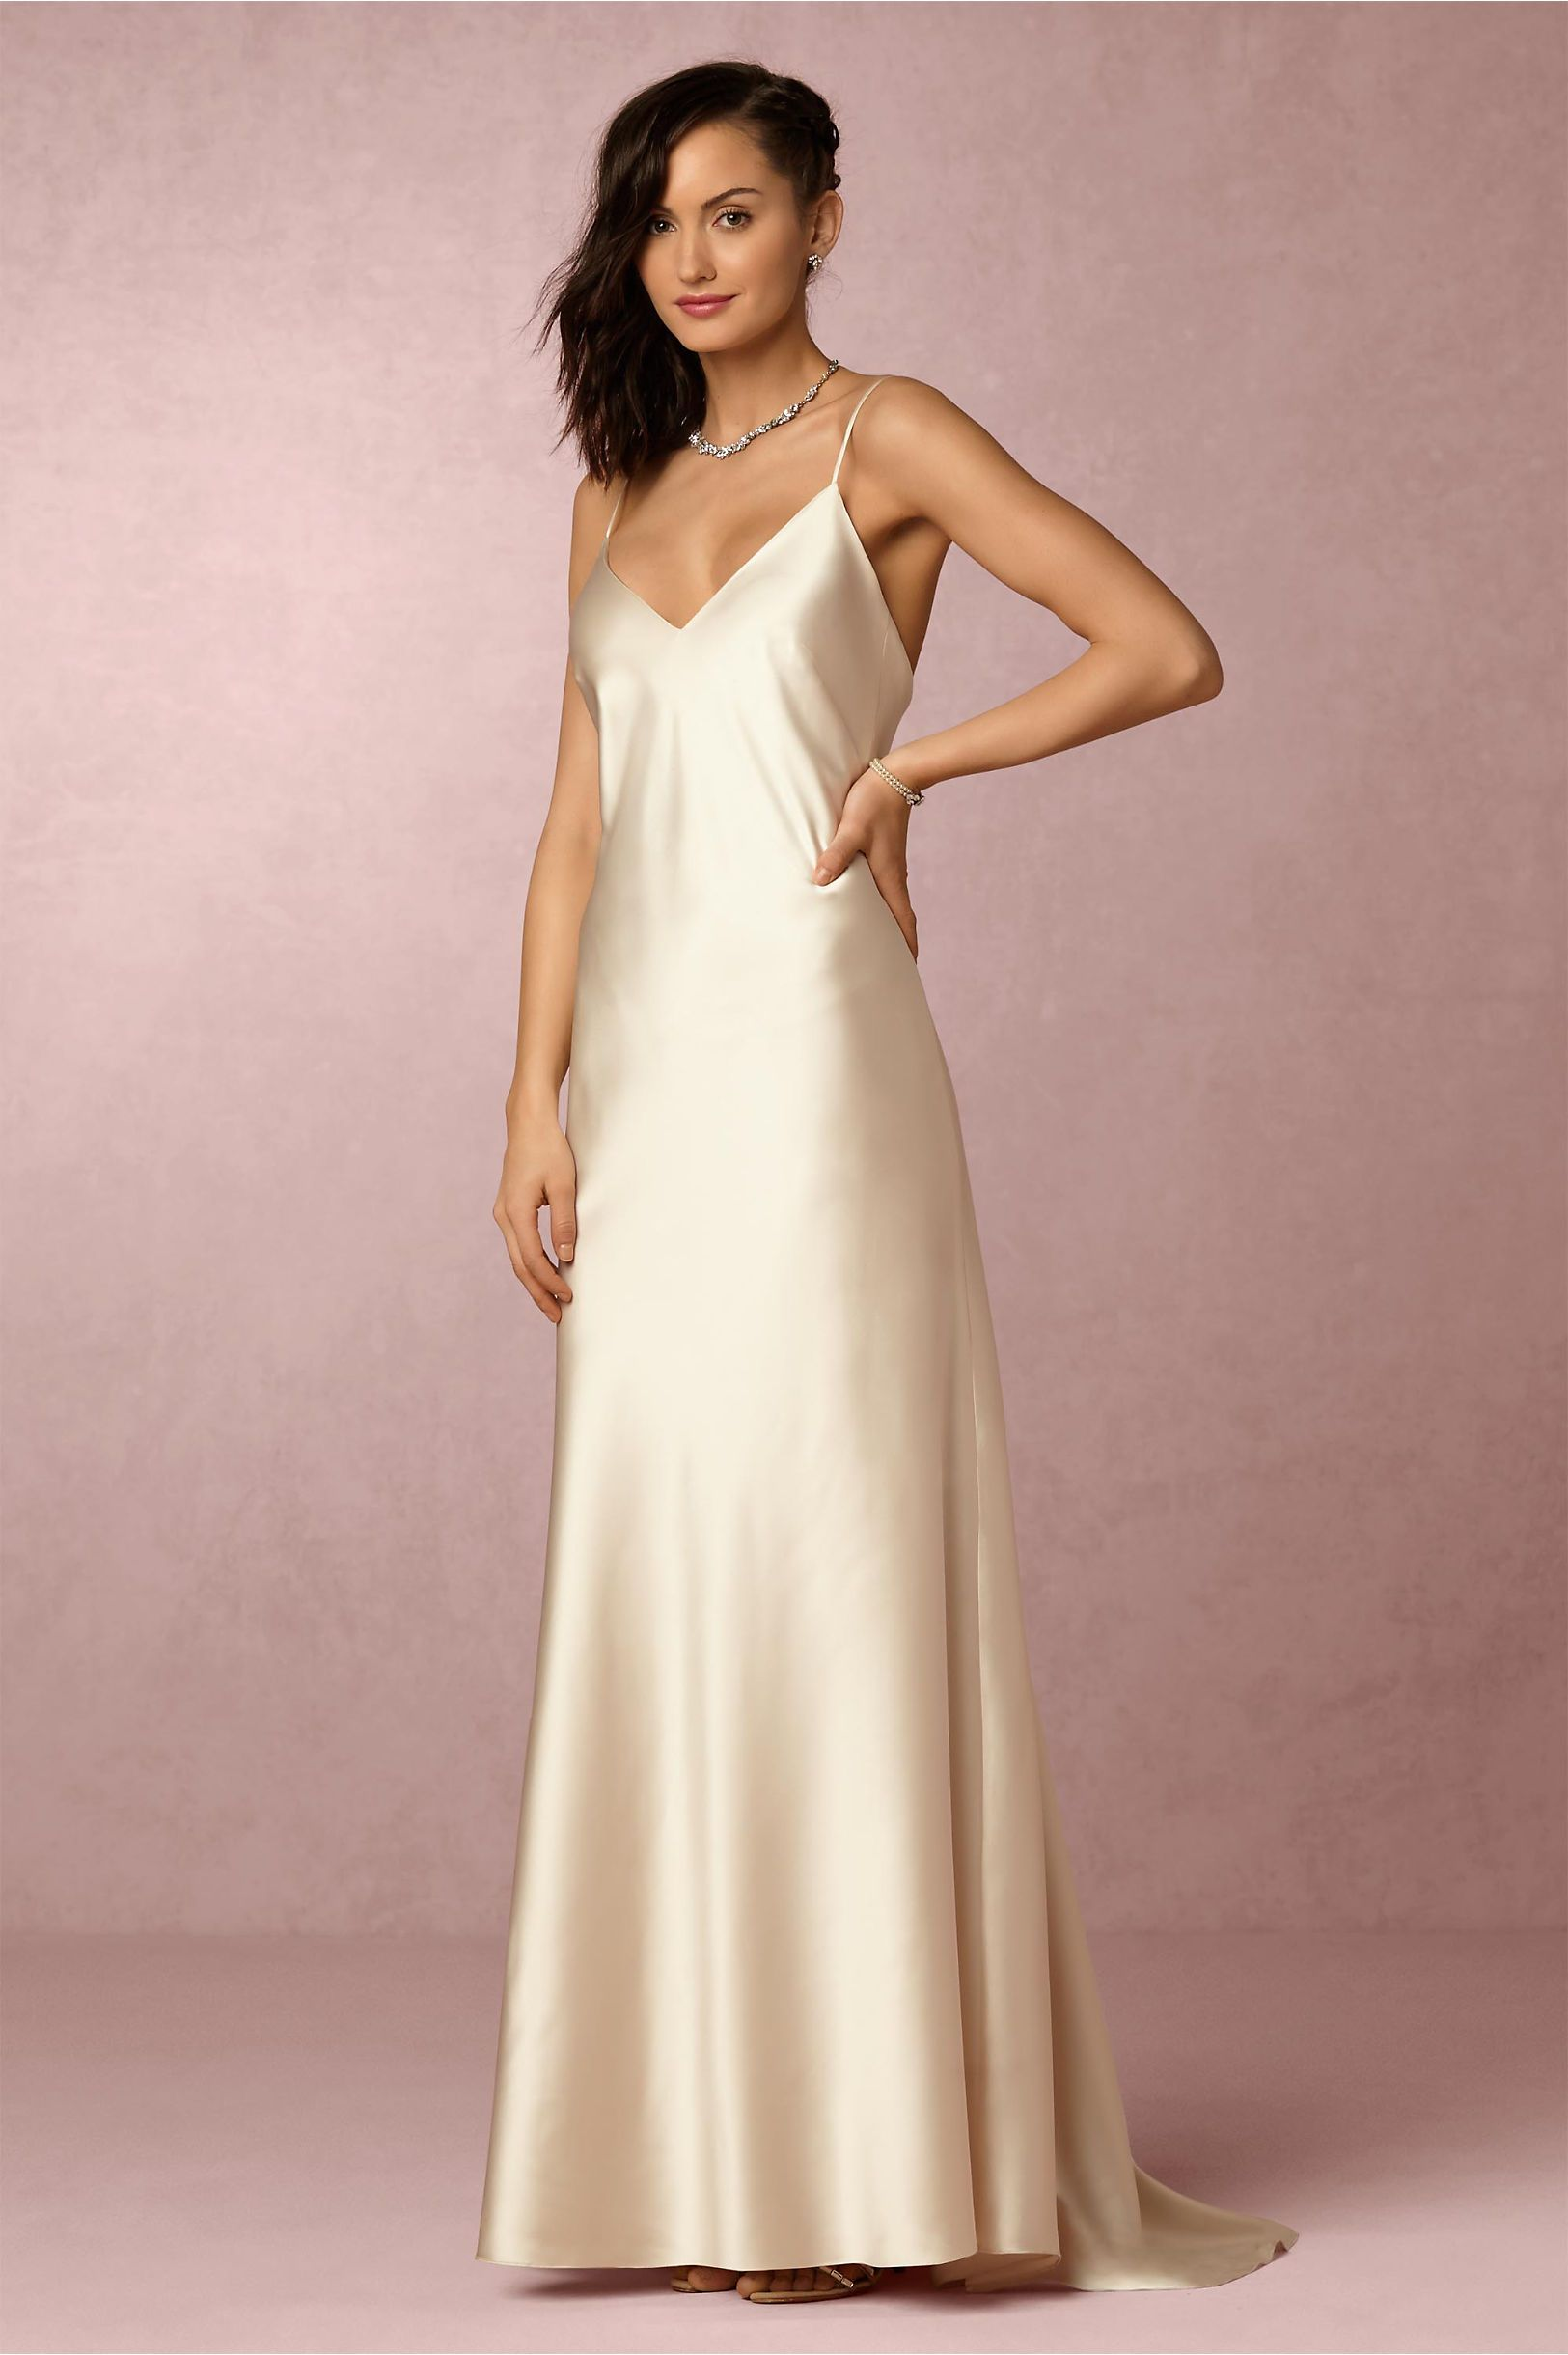 ea6641731e06 800 BHLDN Celina Gown in Bride Wedding Dresses at BHLDN | Things to ...